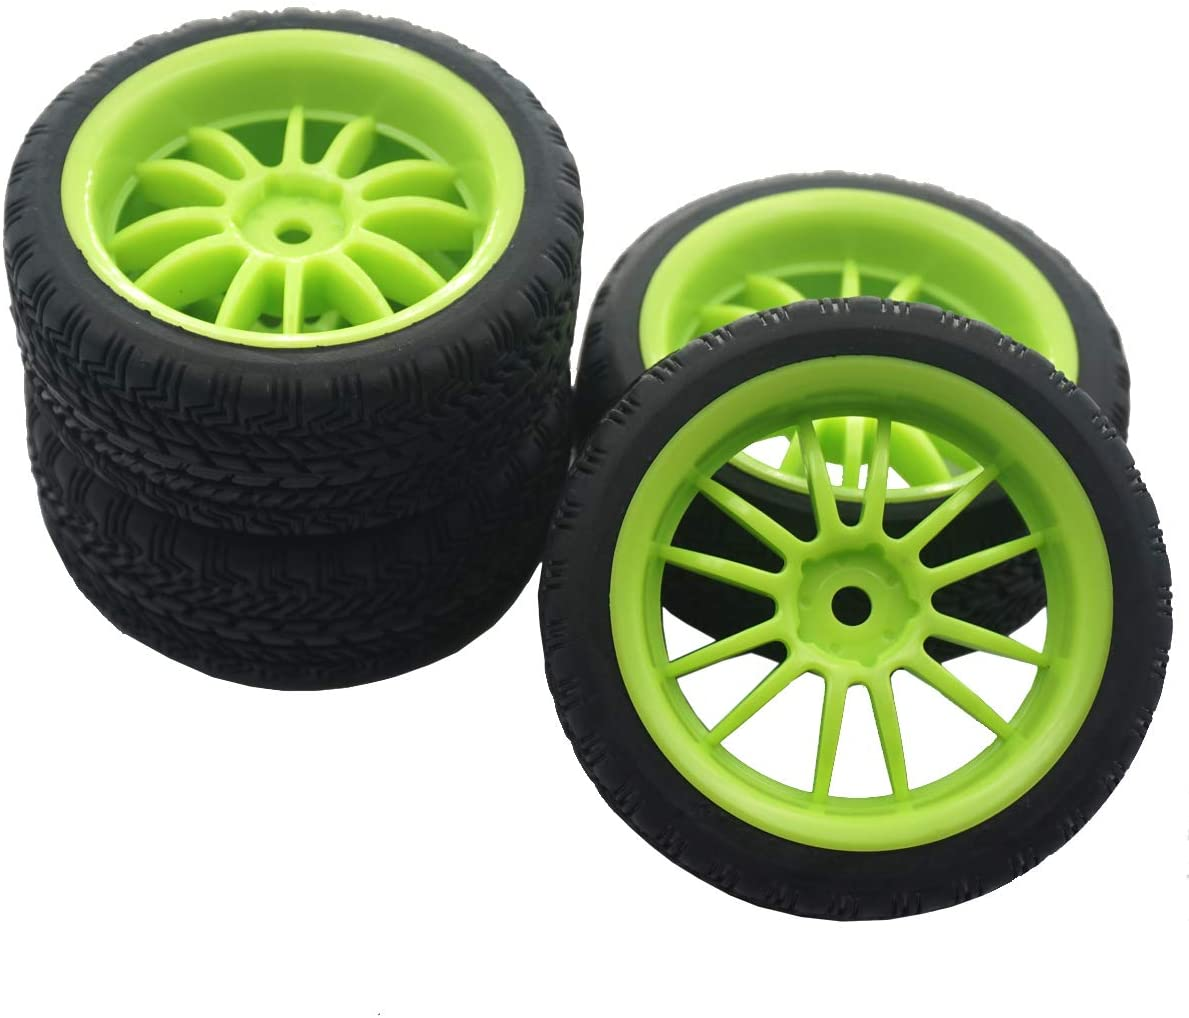 4Pack Mirthobby RC Rubber Tires and Plastic Wheel Rims 12mm Hex Hub for HSP HPI Redcat Tamiya RC 1/10 On Road Racing Touring Car